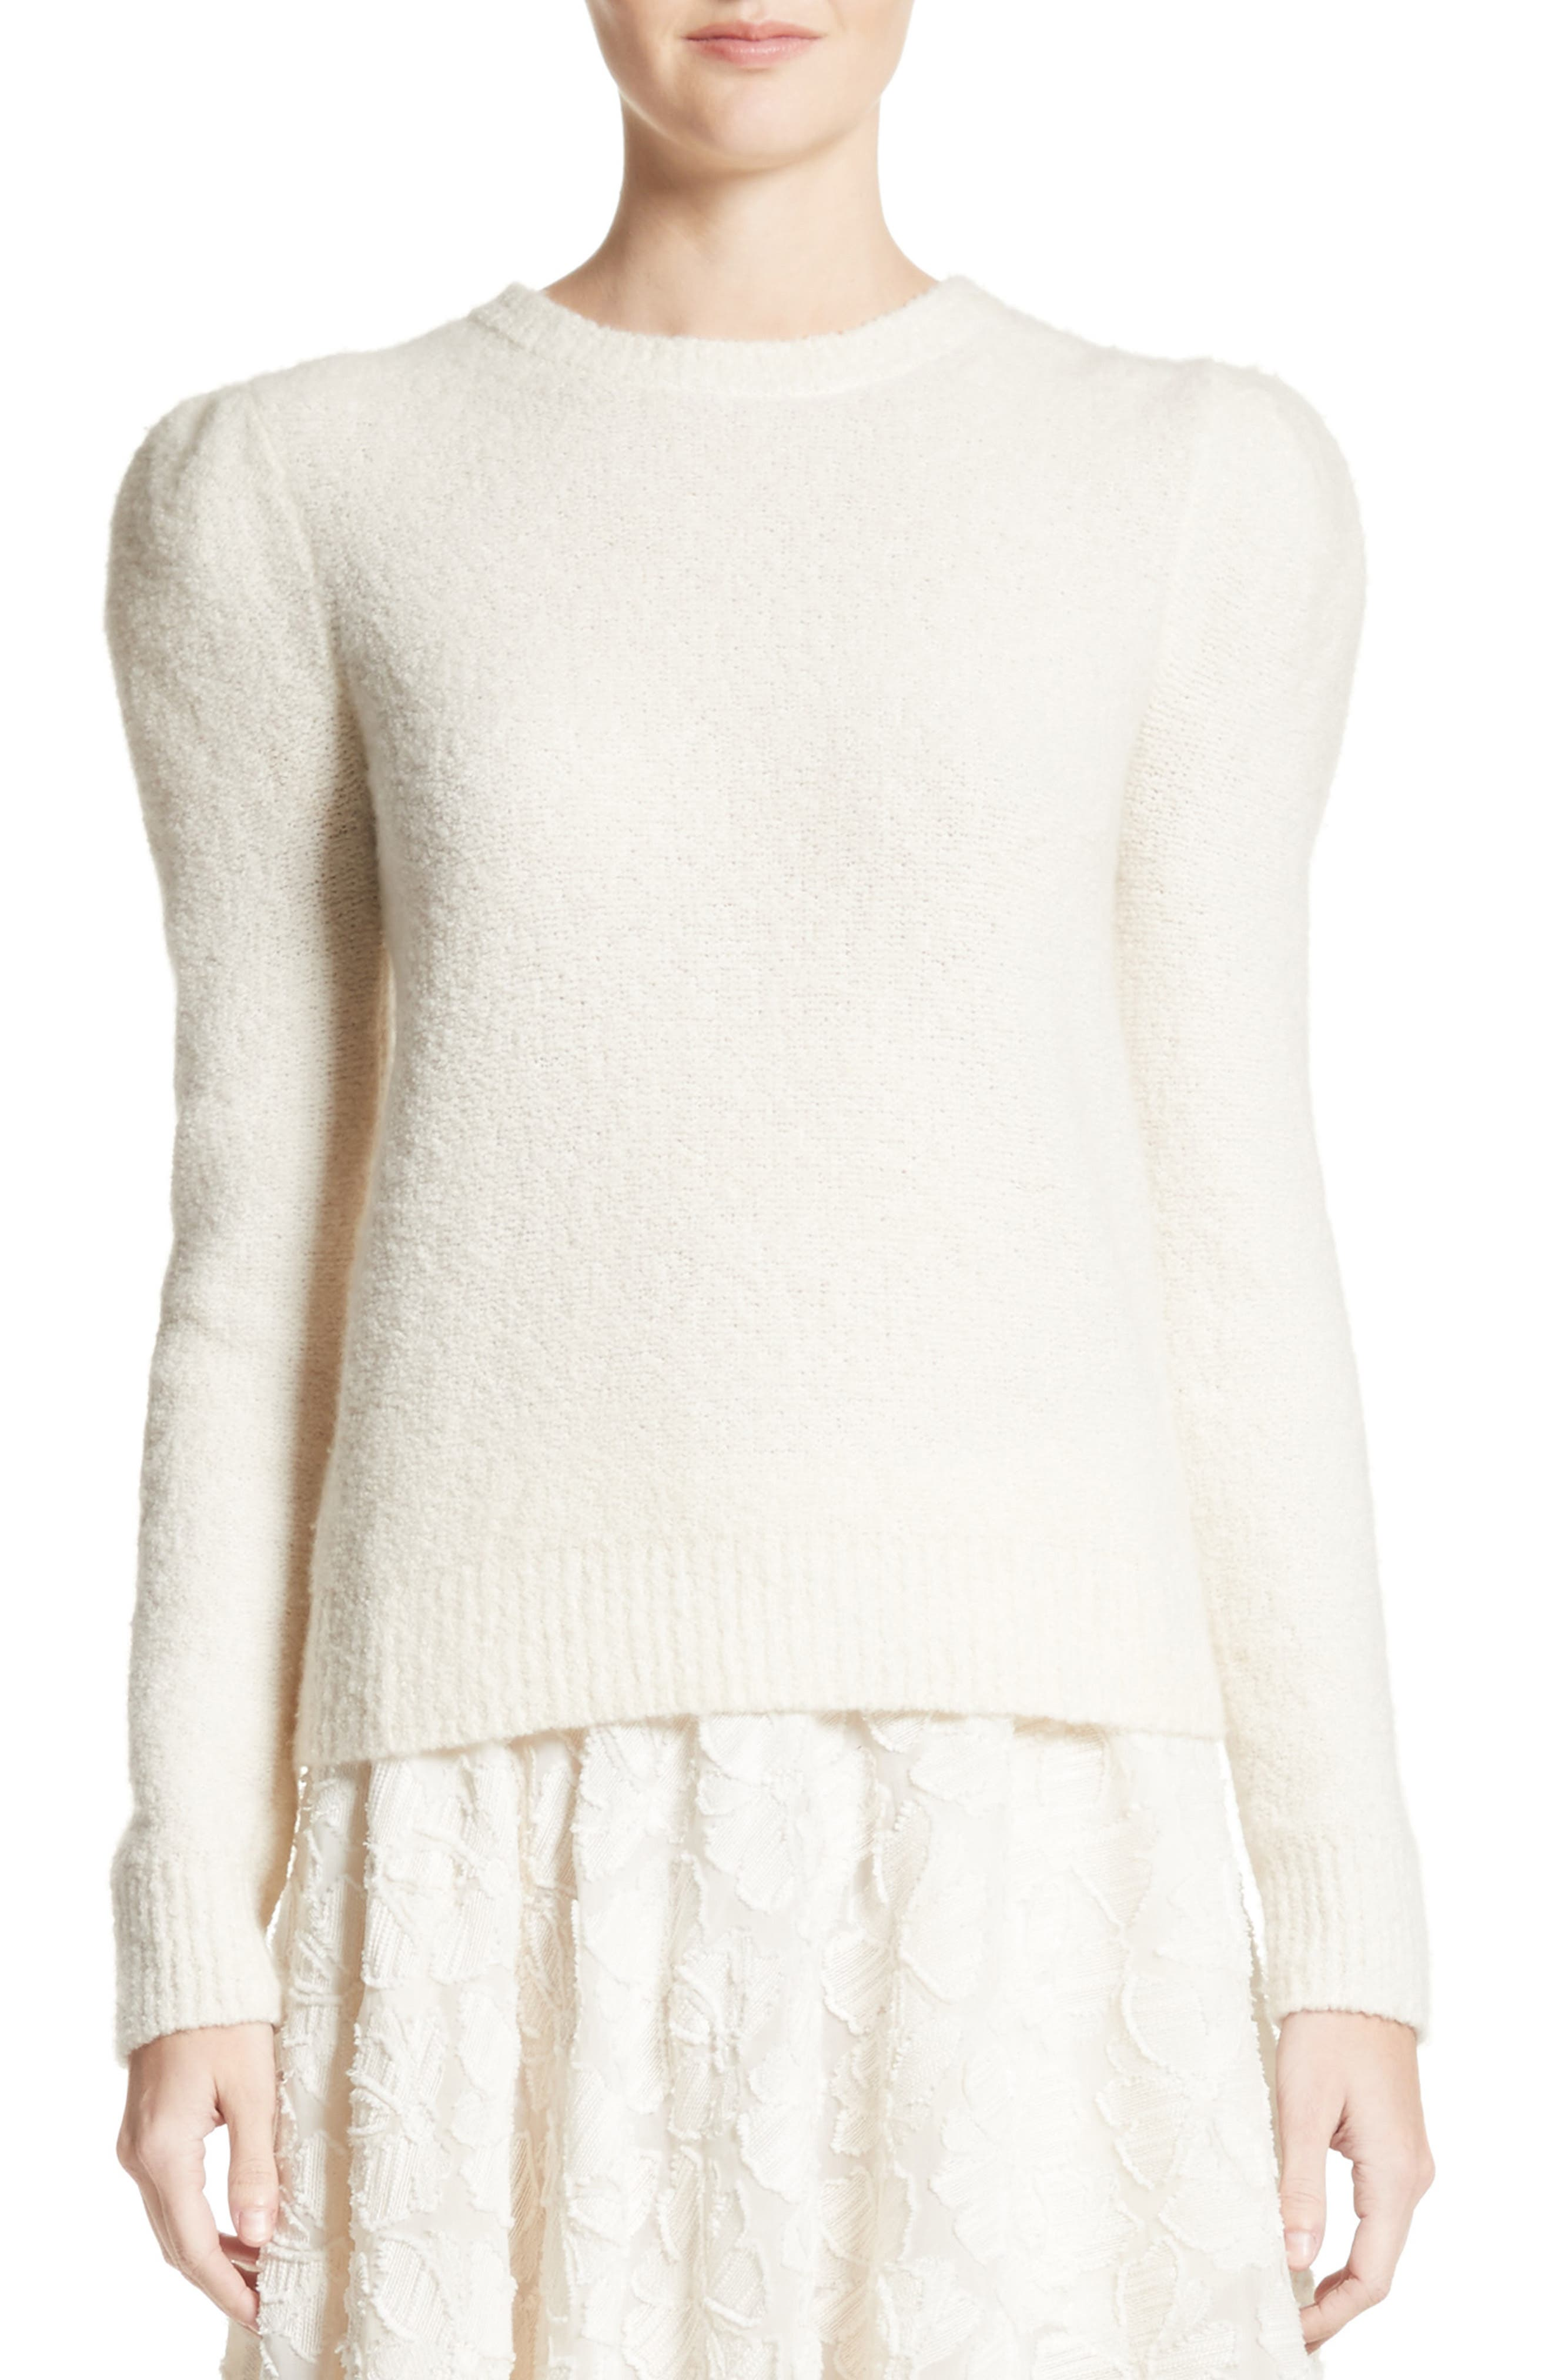 Alternate Image 1 Selected - Co Puff Sleeve Cashmere Blend Sweater